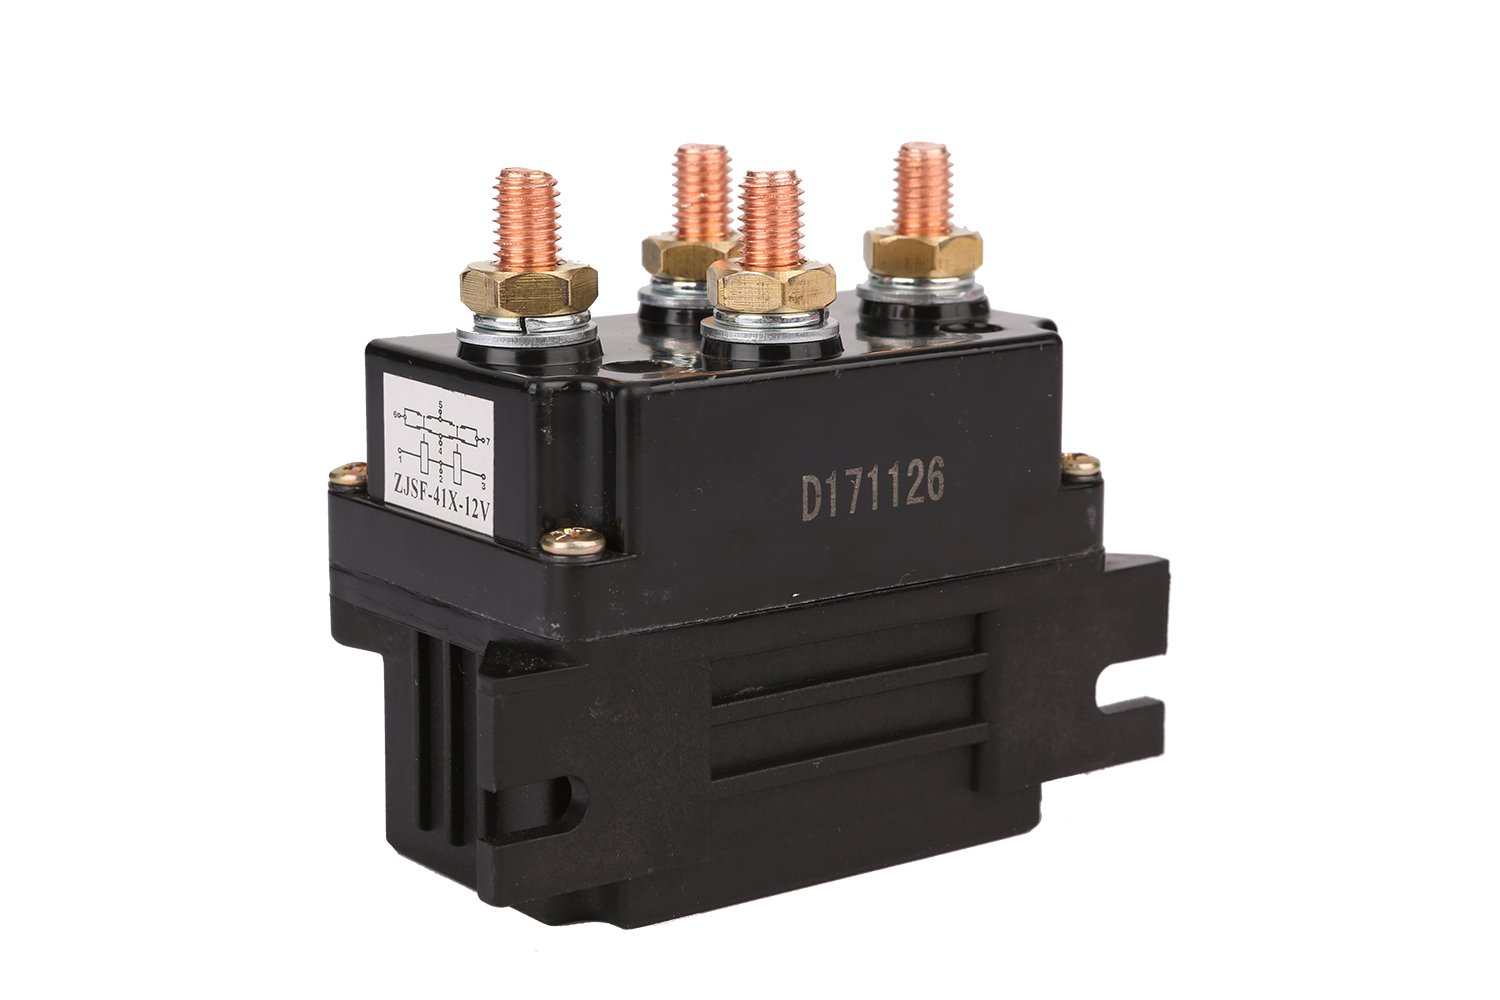 X-BULL Replacement Universal Winch Contactor Solenoid Relay Controller 500A DC Switch Boat ATV Winch Control